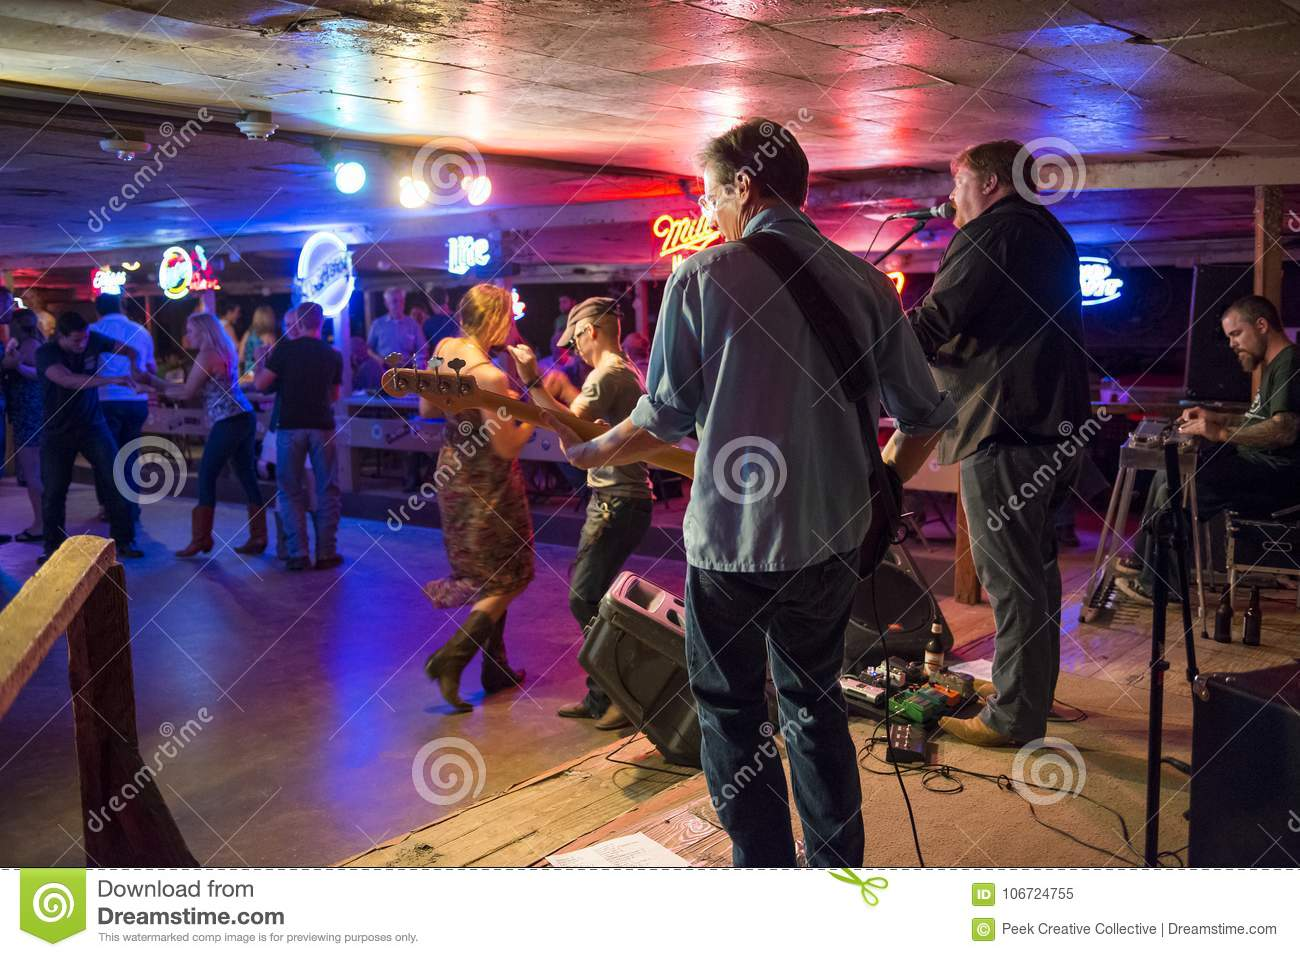 Country music band playing and people dancing in the Broken Spoke dance hall in Austin, Texas